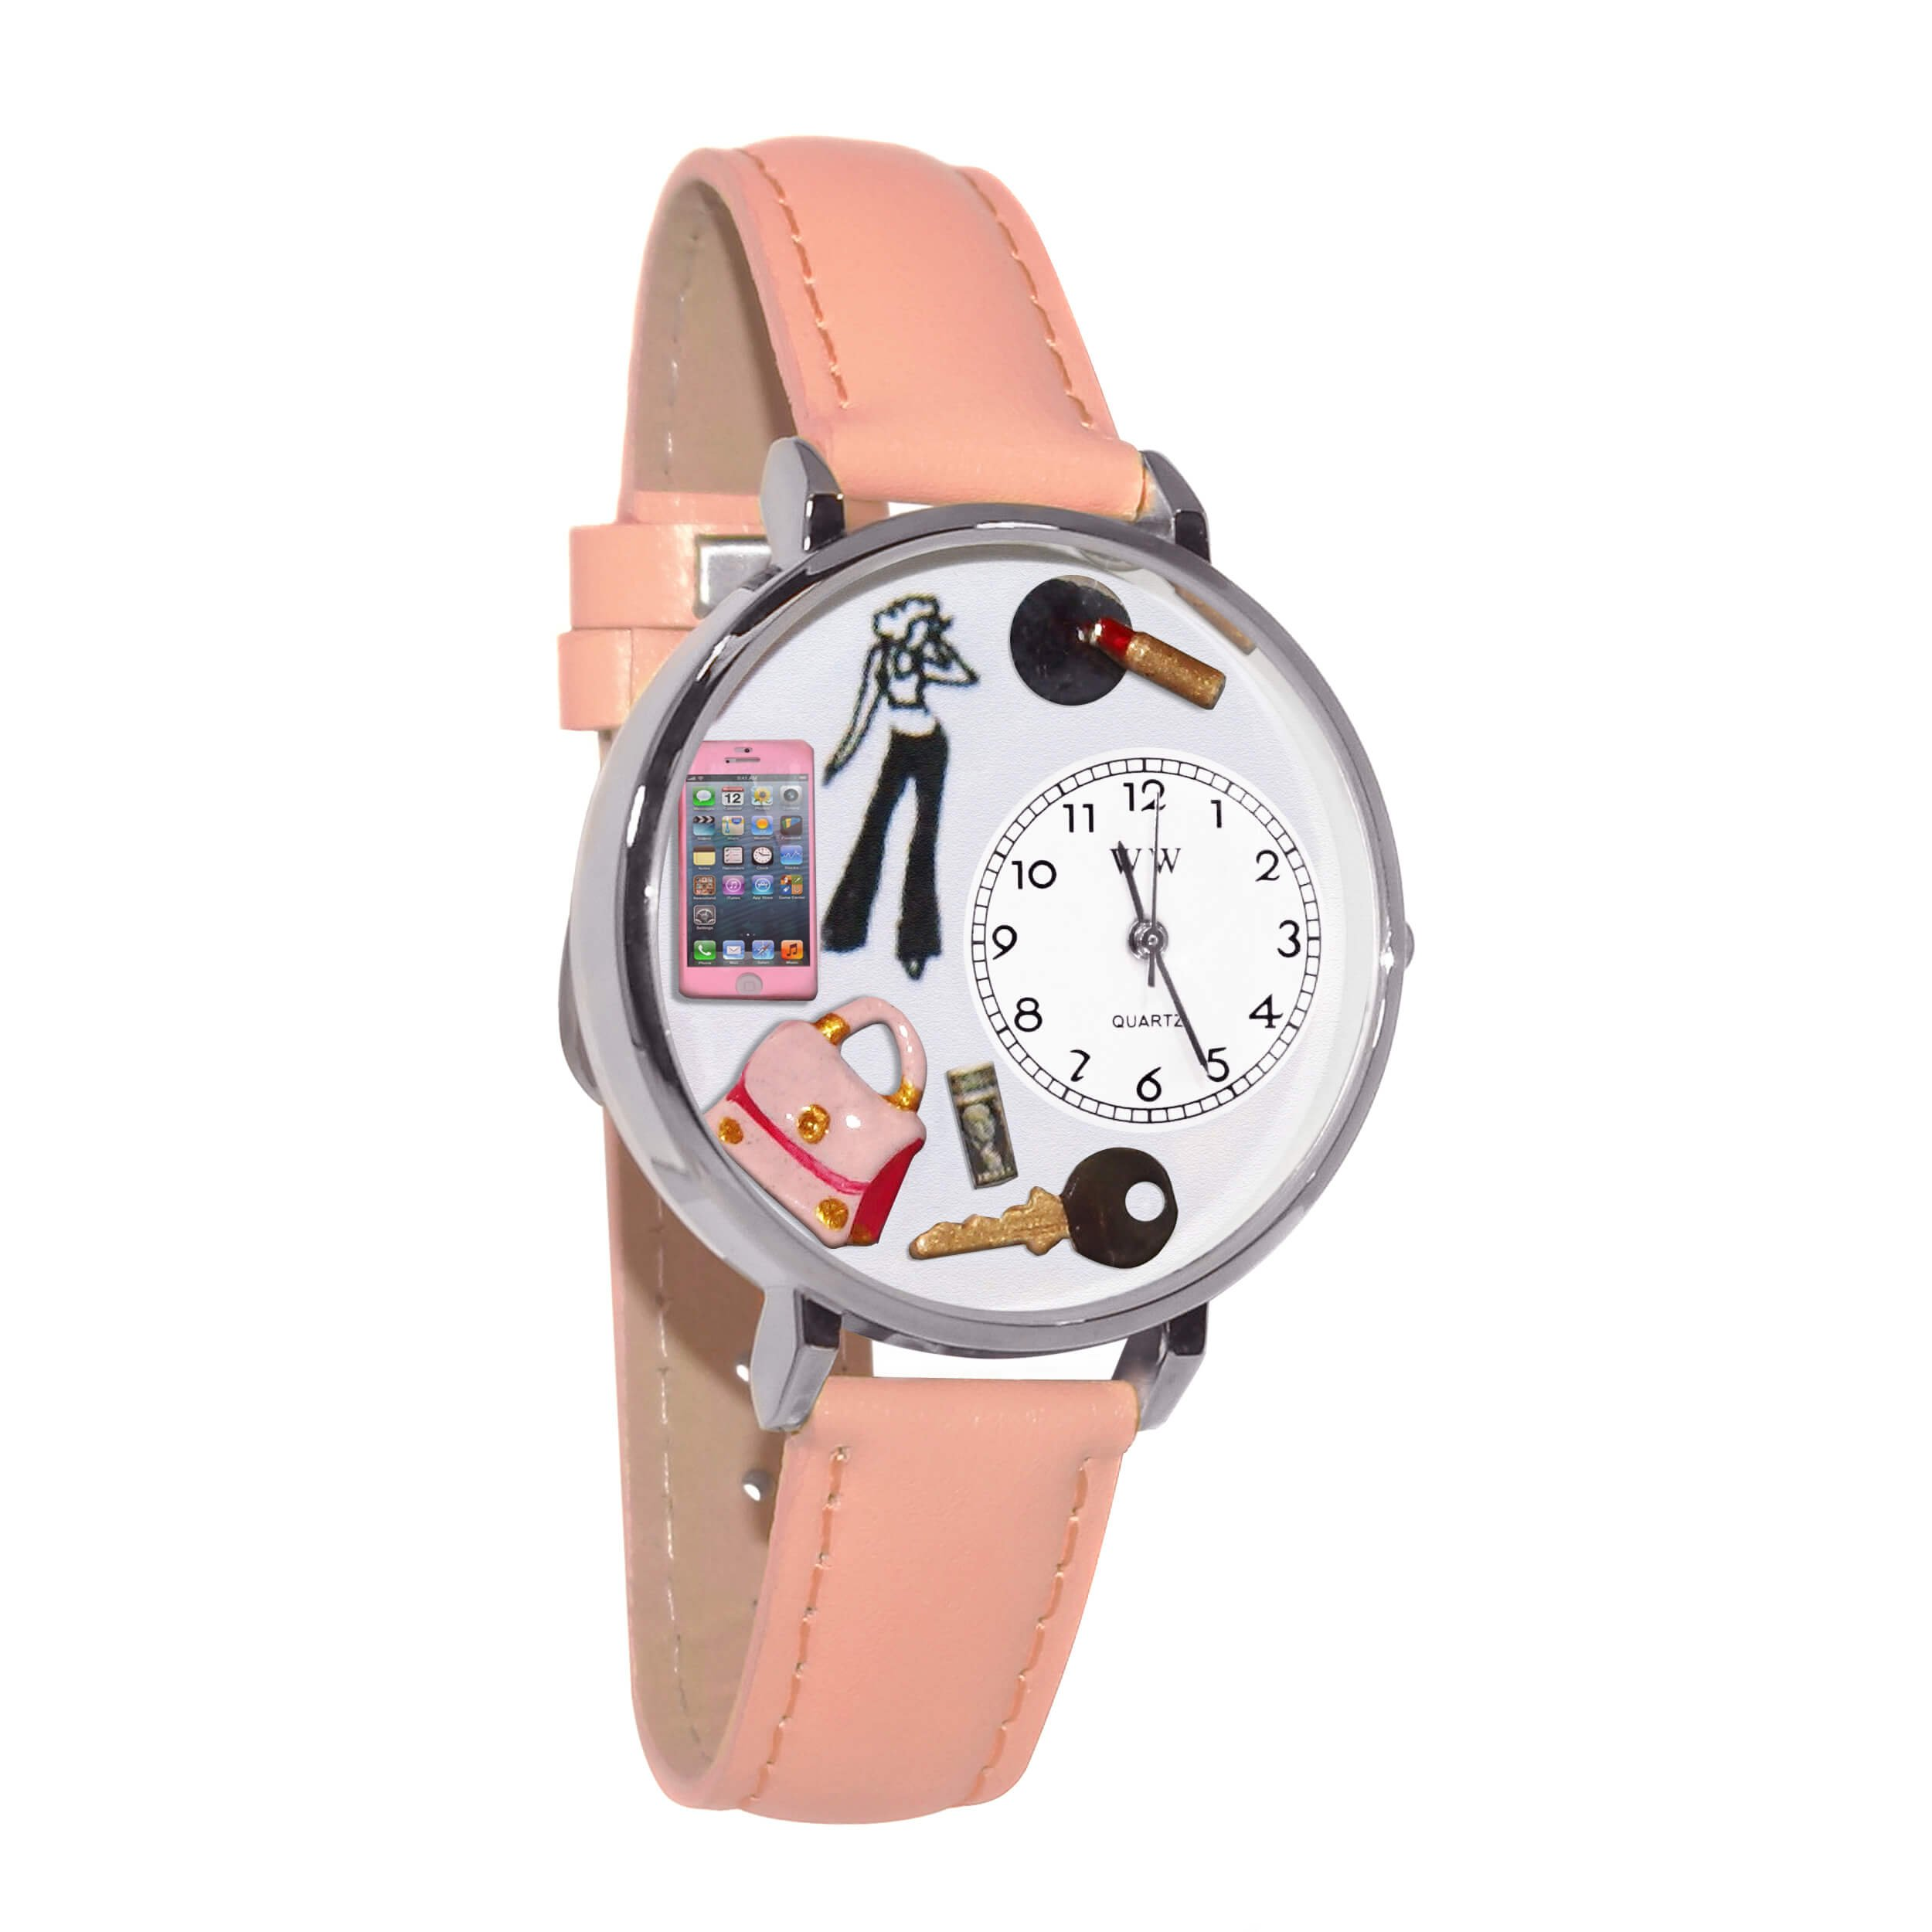 Whimsical Watches Unisex U1610008 Teen Girl Pink Leather Watch